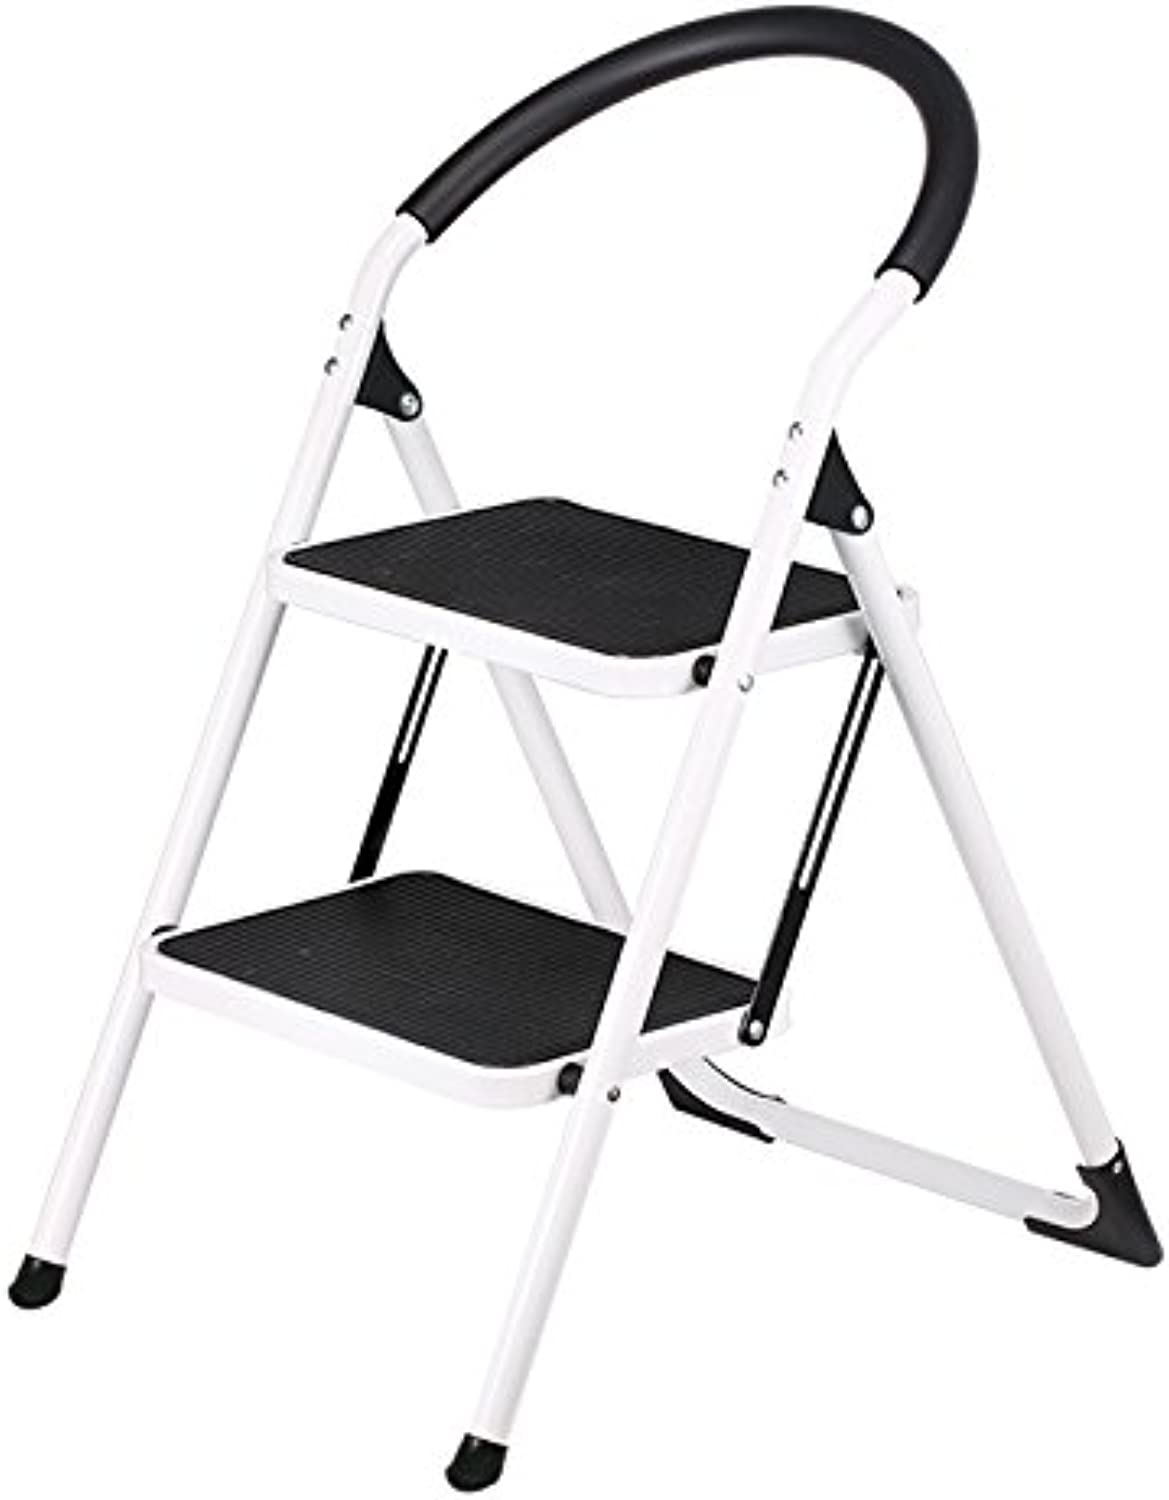 Ladder, Portable Folding Ladder, Steel Ladder, Small Ladder, Multi-Function Staircase, Home Indoor, Two-Step Ladder Stool (color   Black, Size   47.5  57  81.5cm)